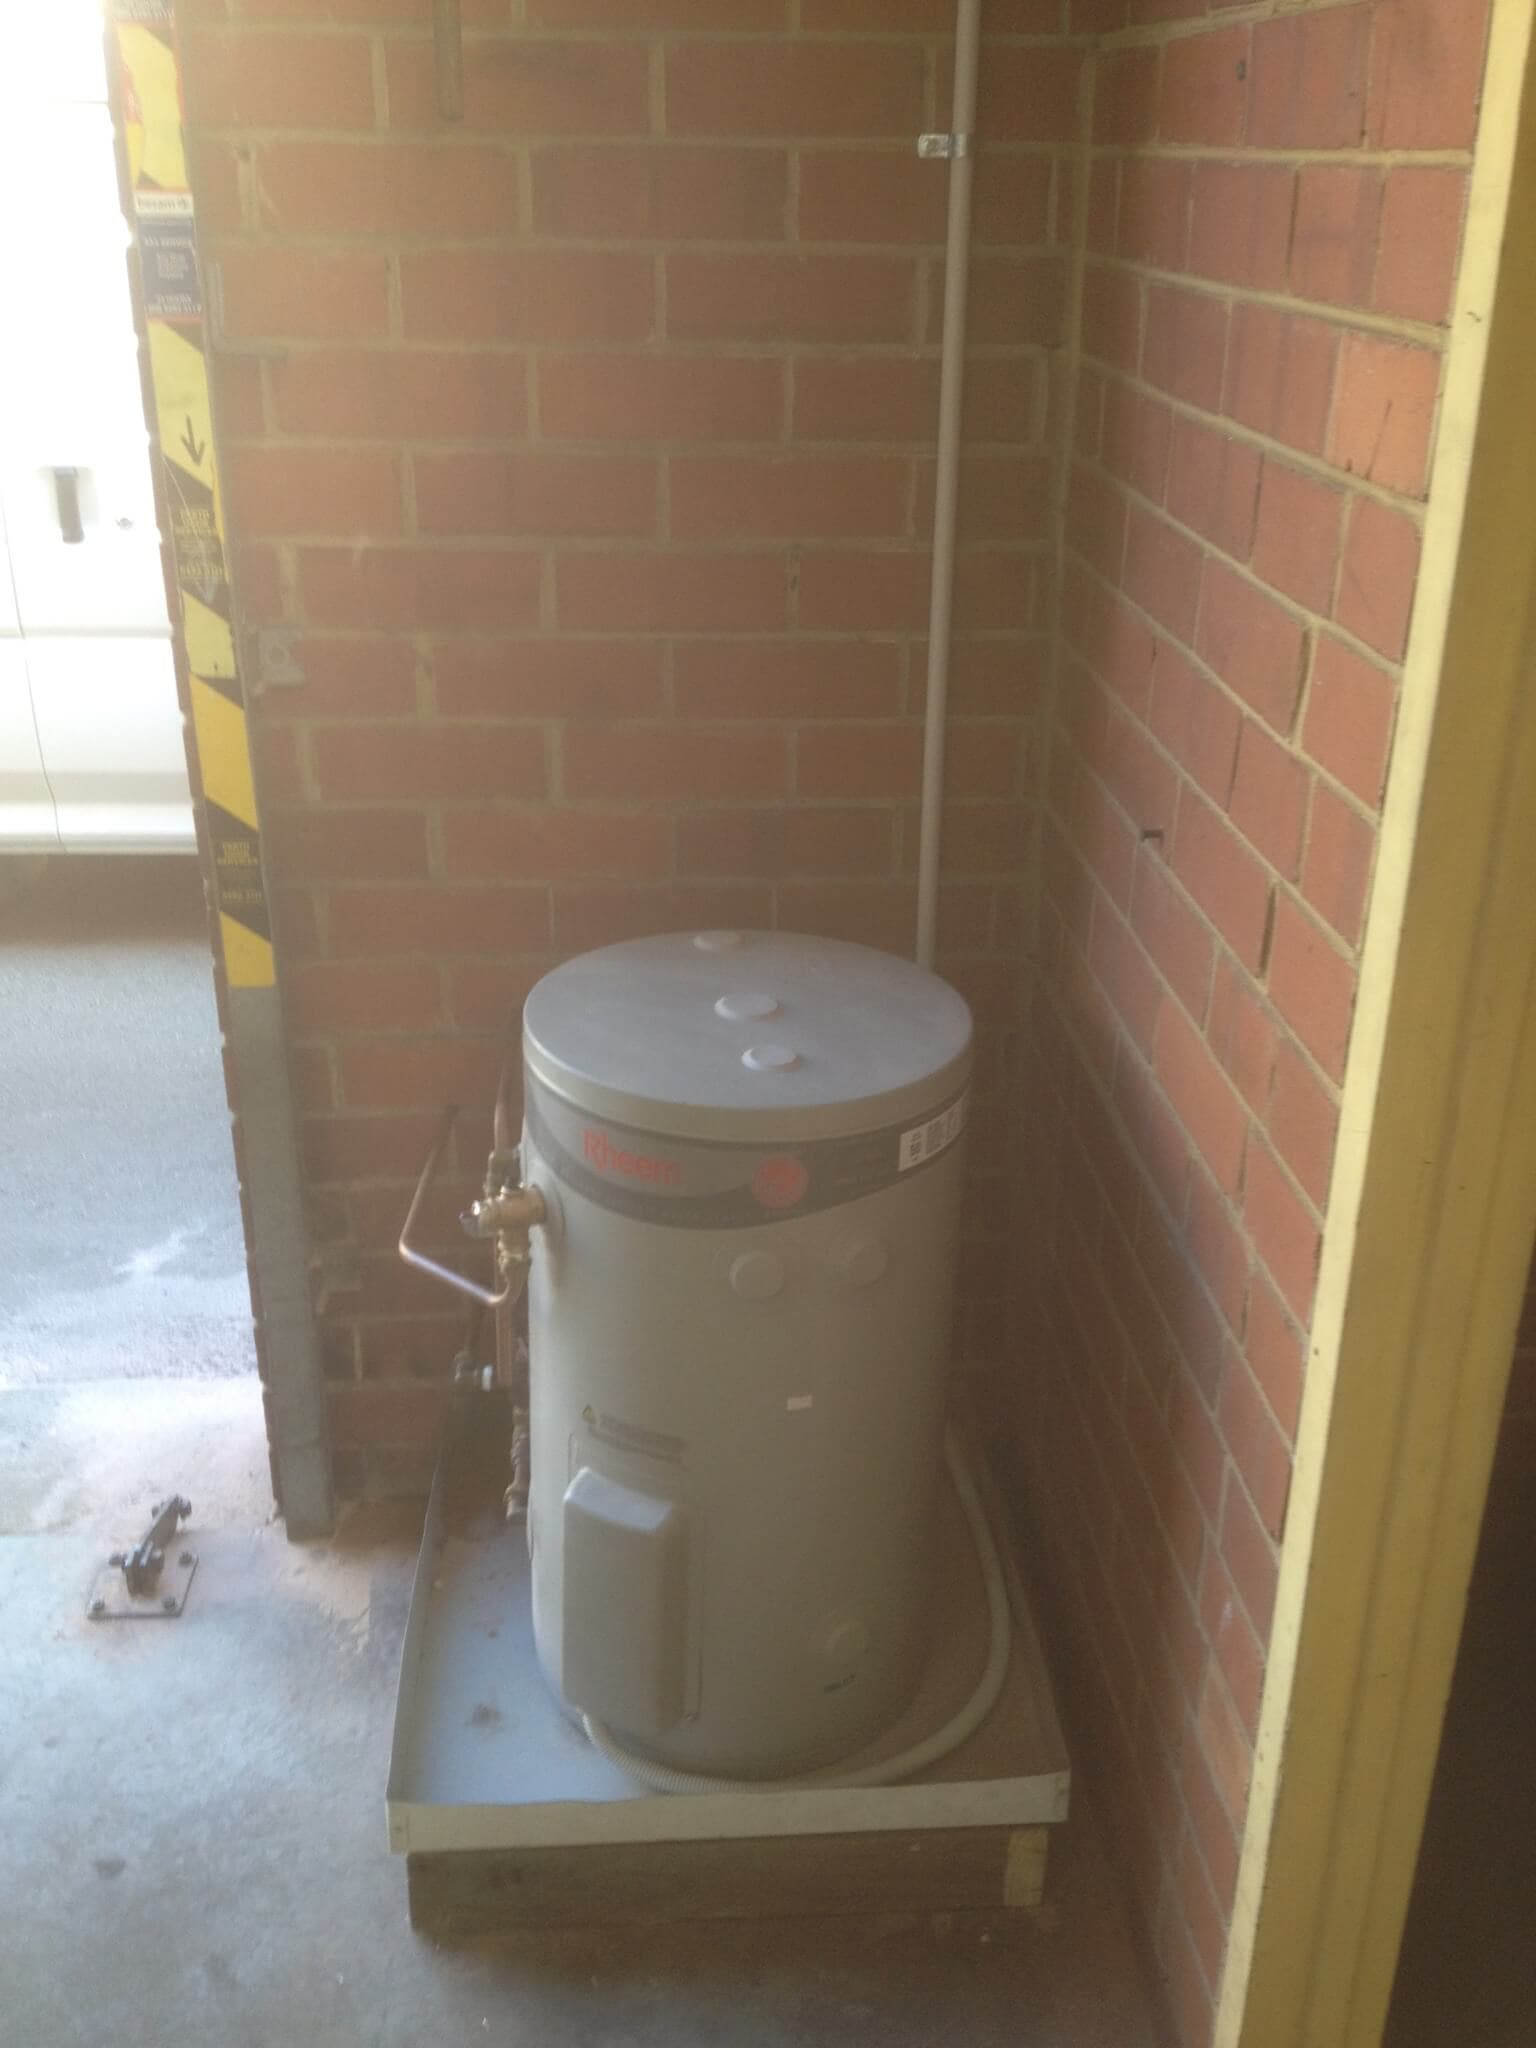 Everyday Plumbers Residential Hotwater Services - Machine Setup with Platform